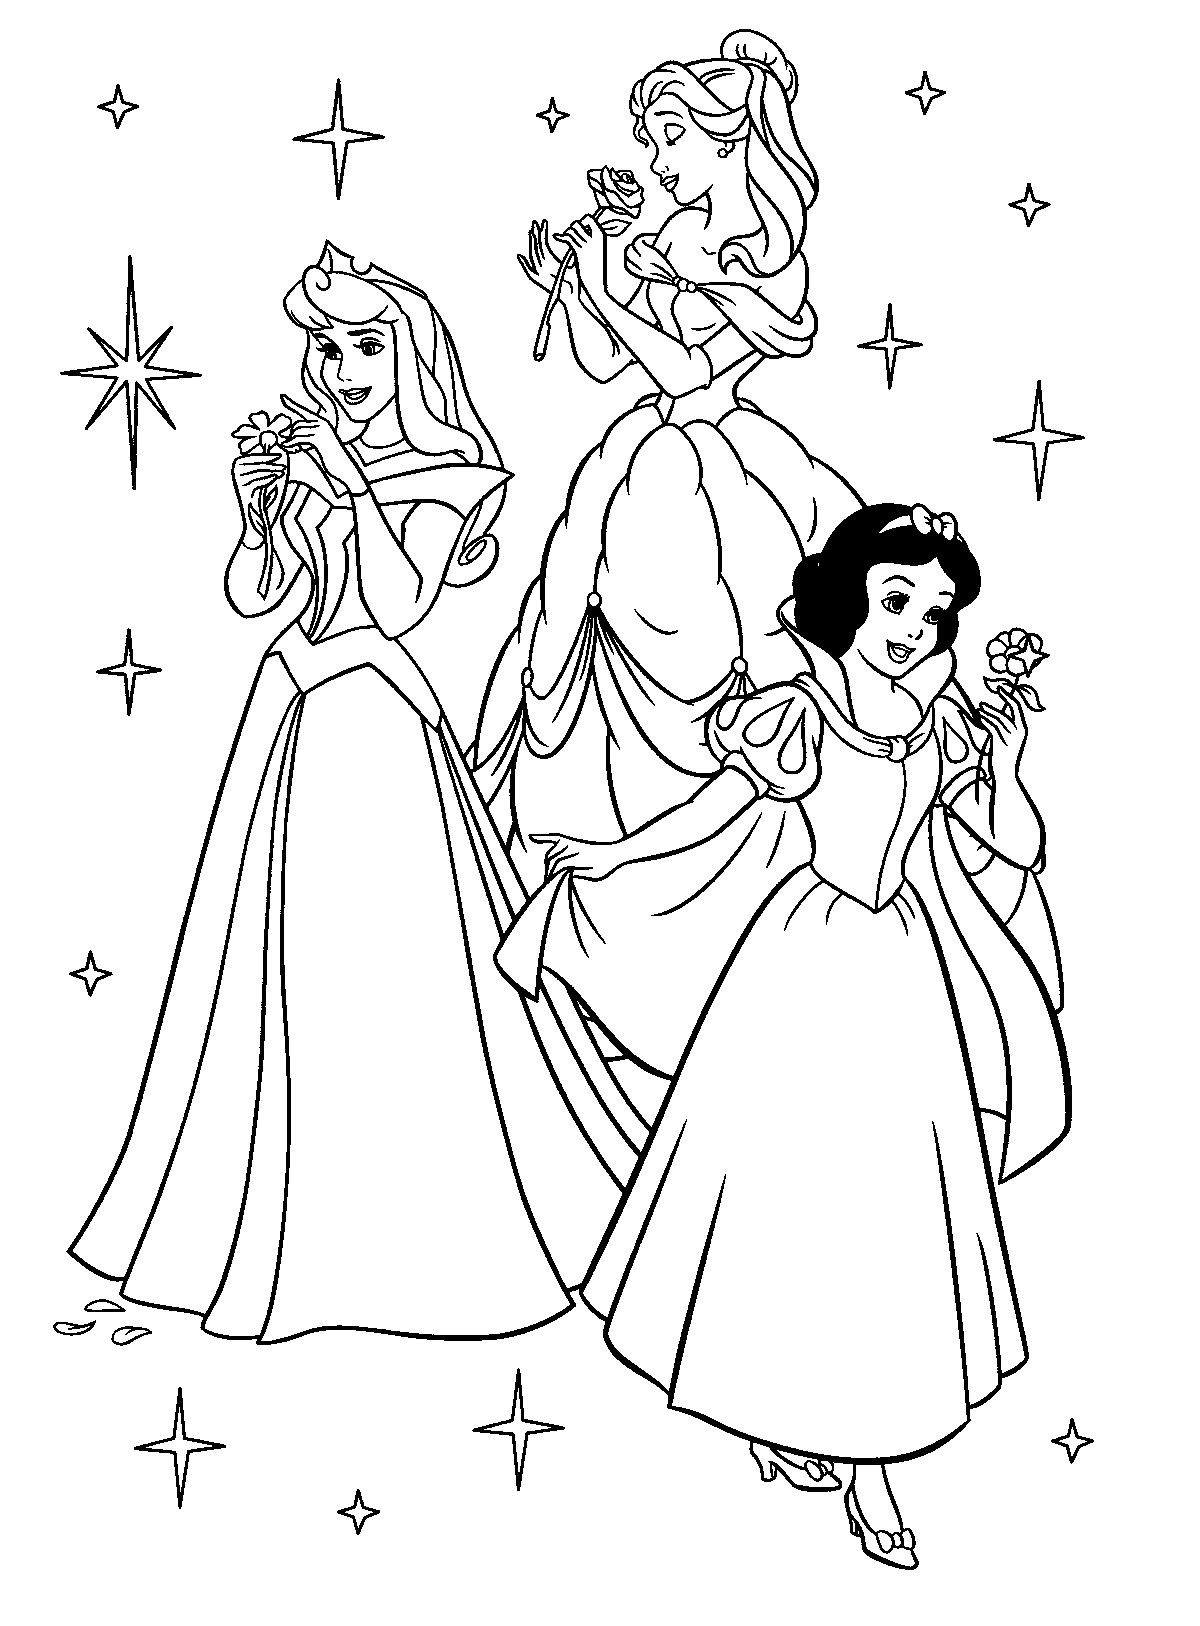 disney-princess coloring pages 11,printable,coloring pages